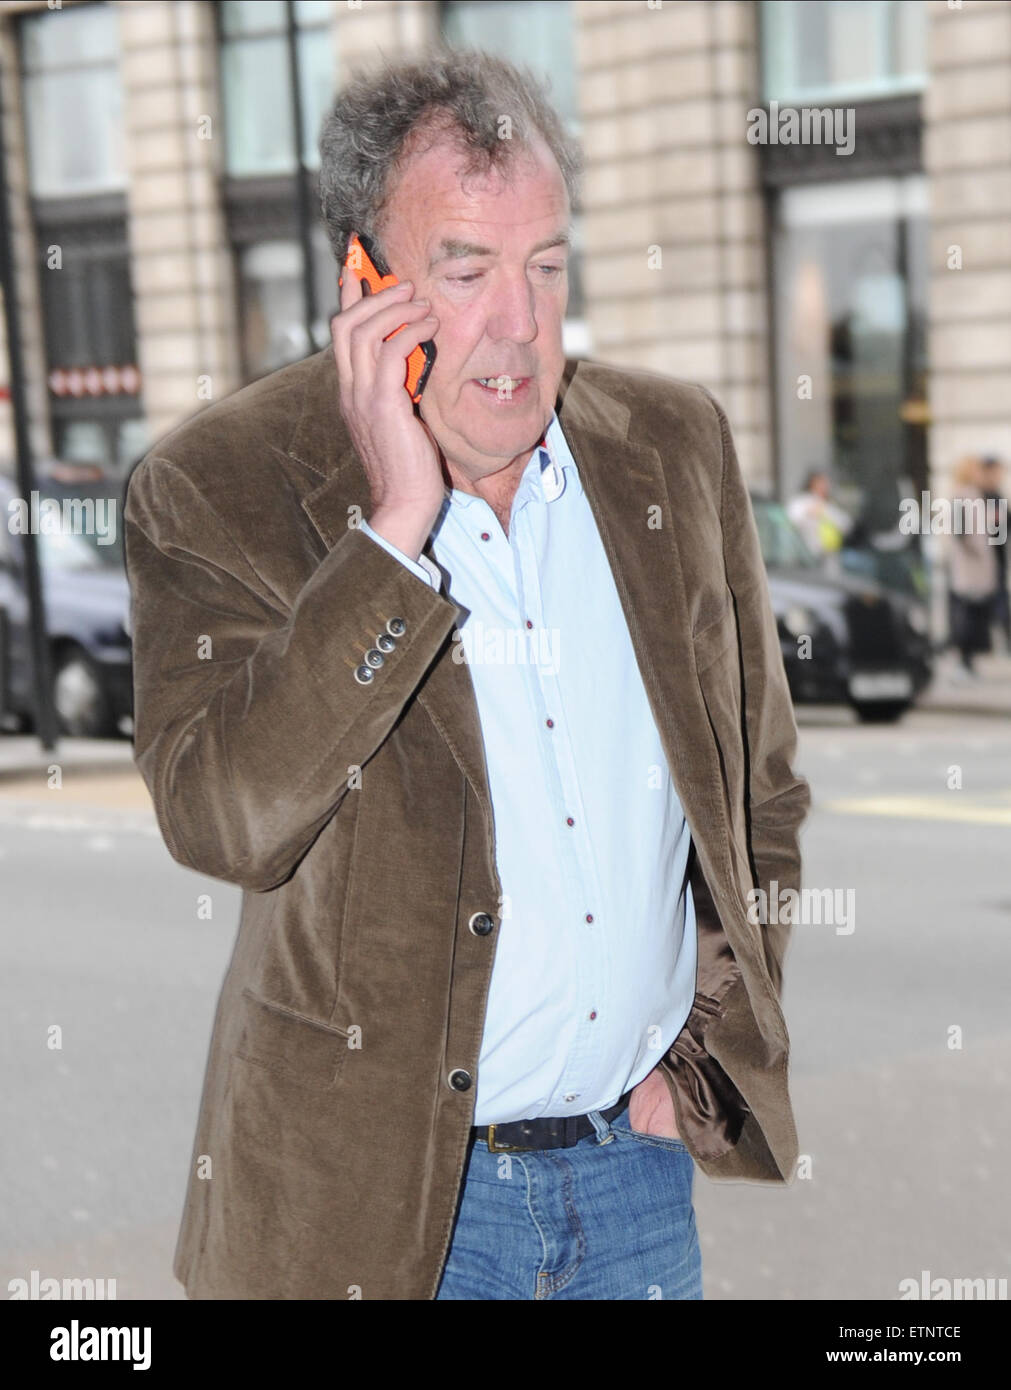 How to Contact Jeremy Clarkson forecast